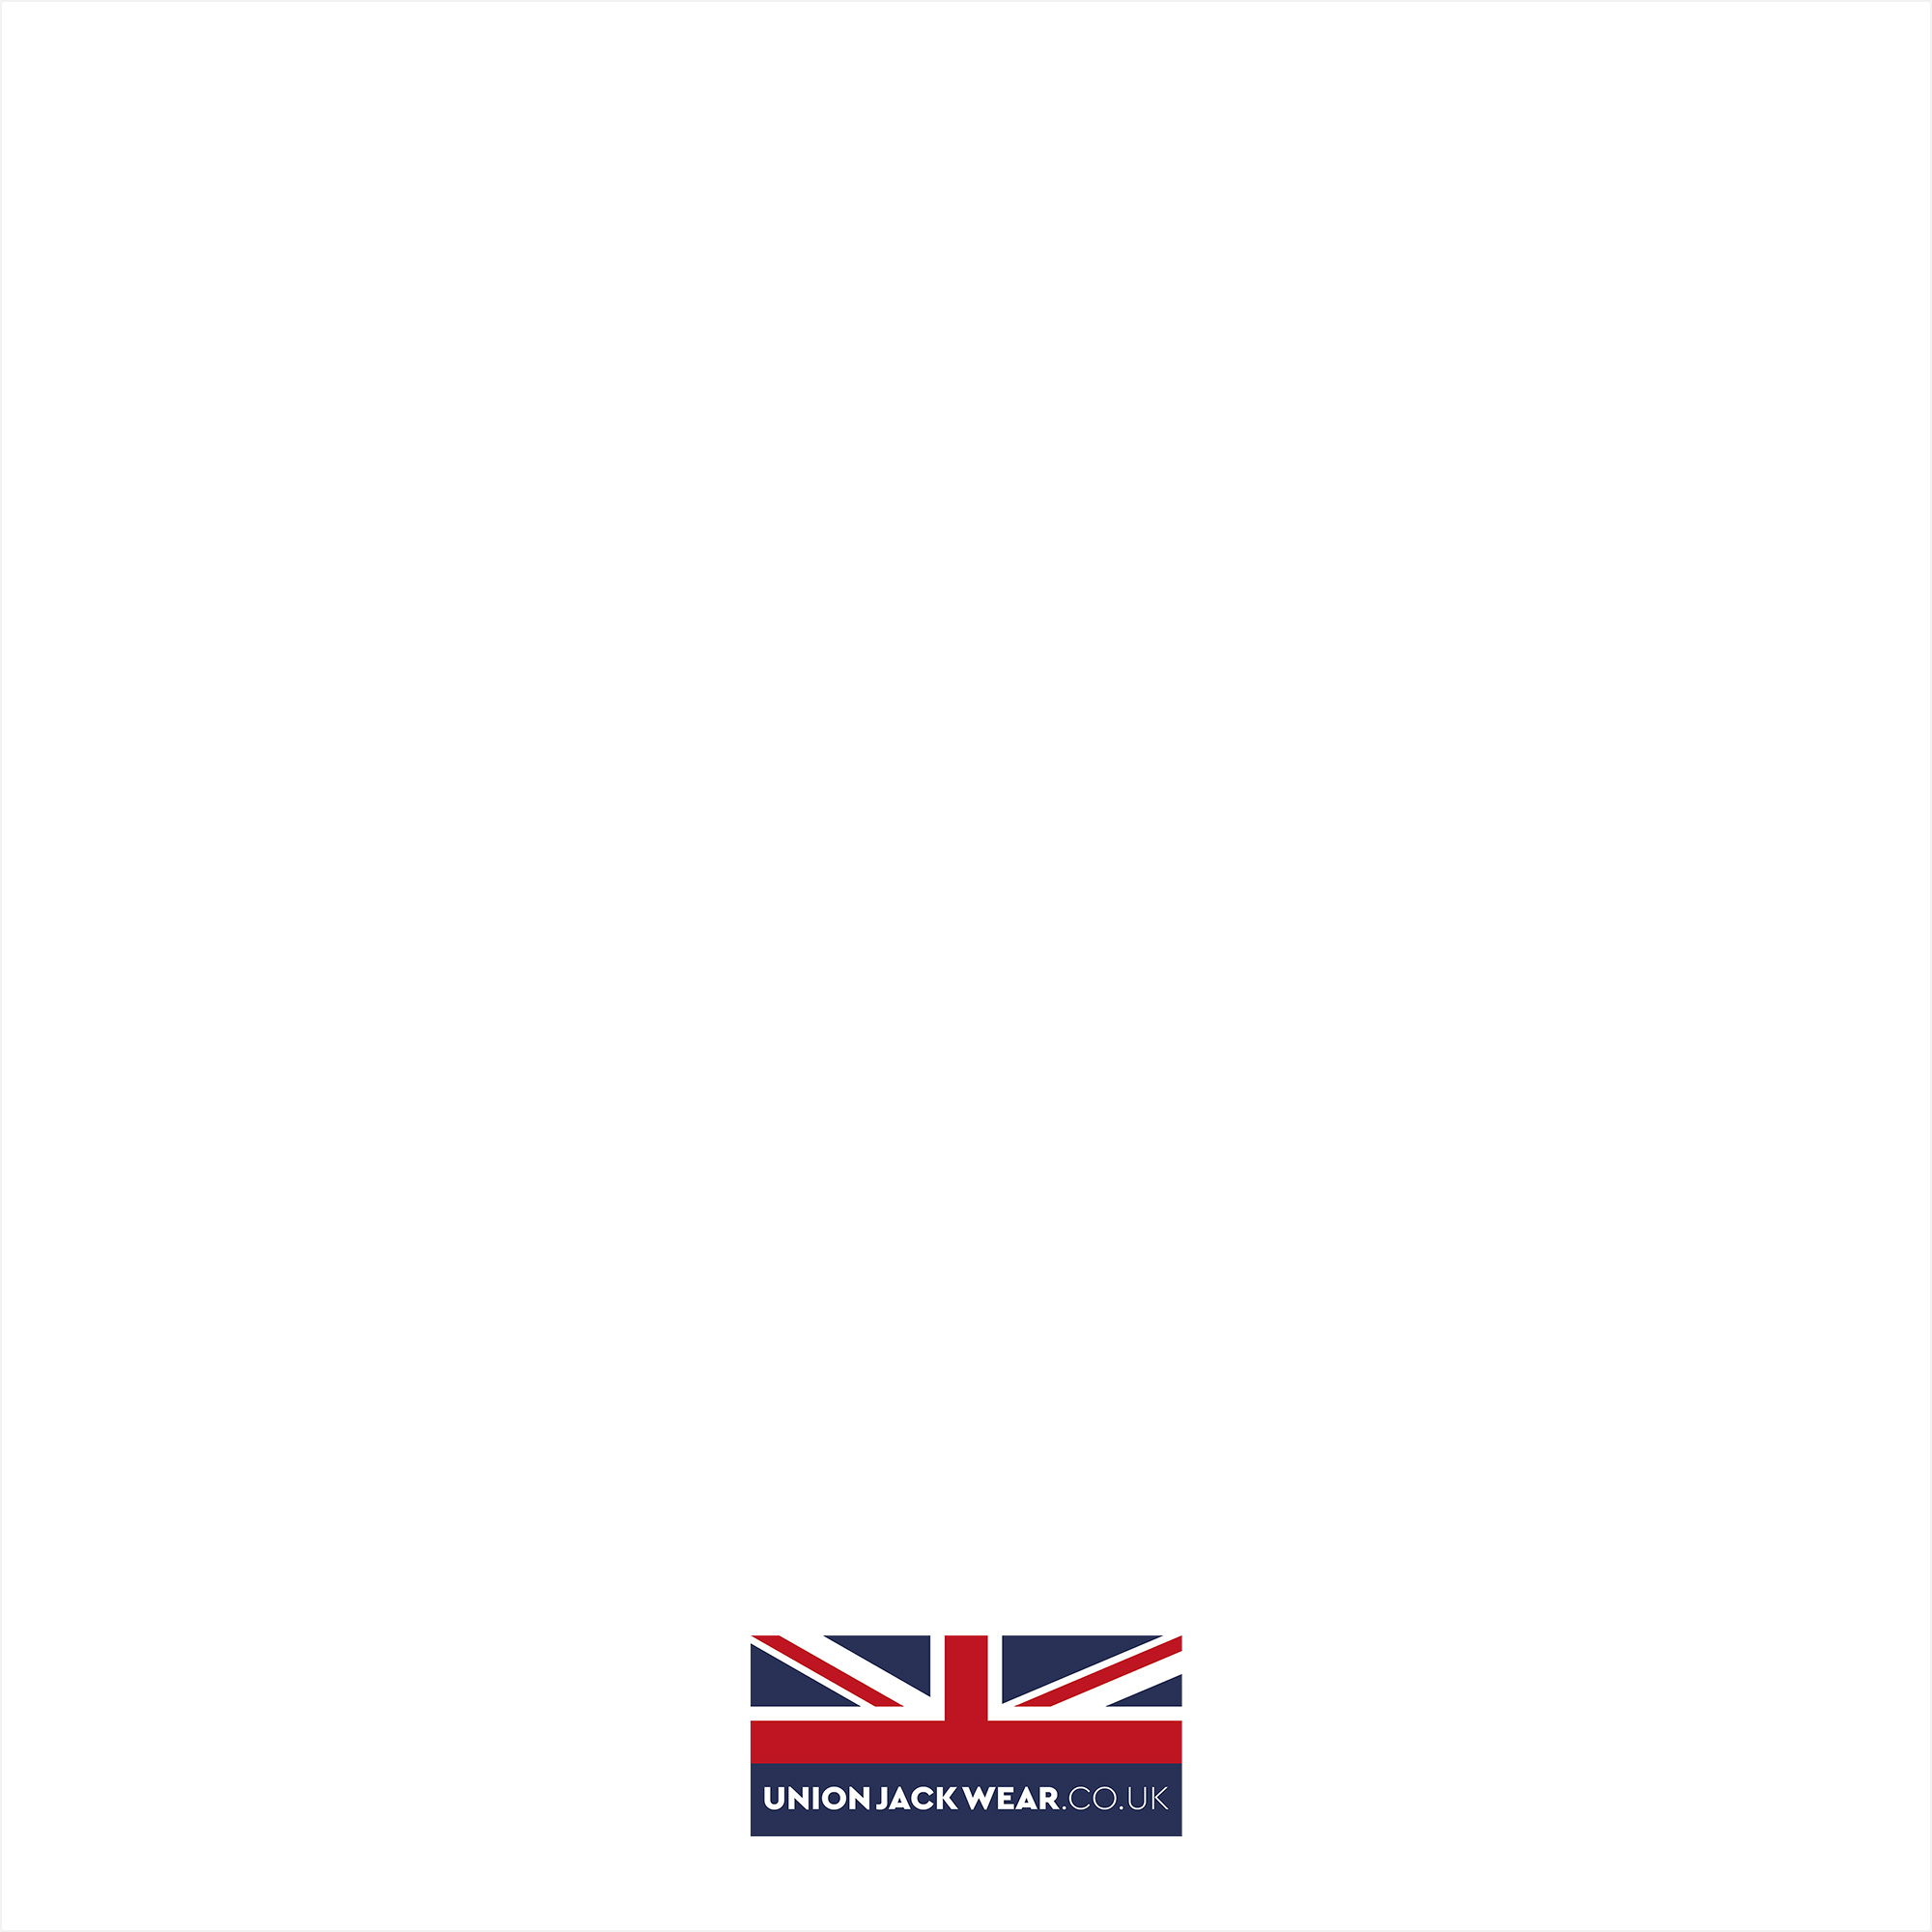 Union Jack Napkins - Pack of 20 - 3ply